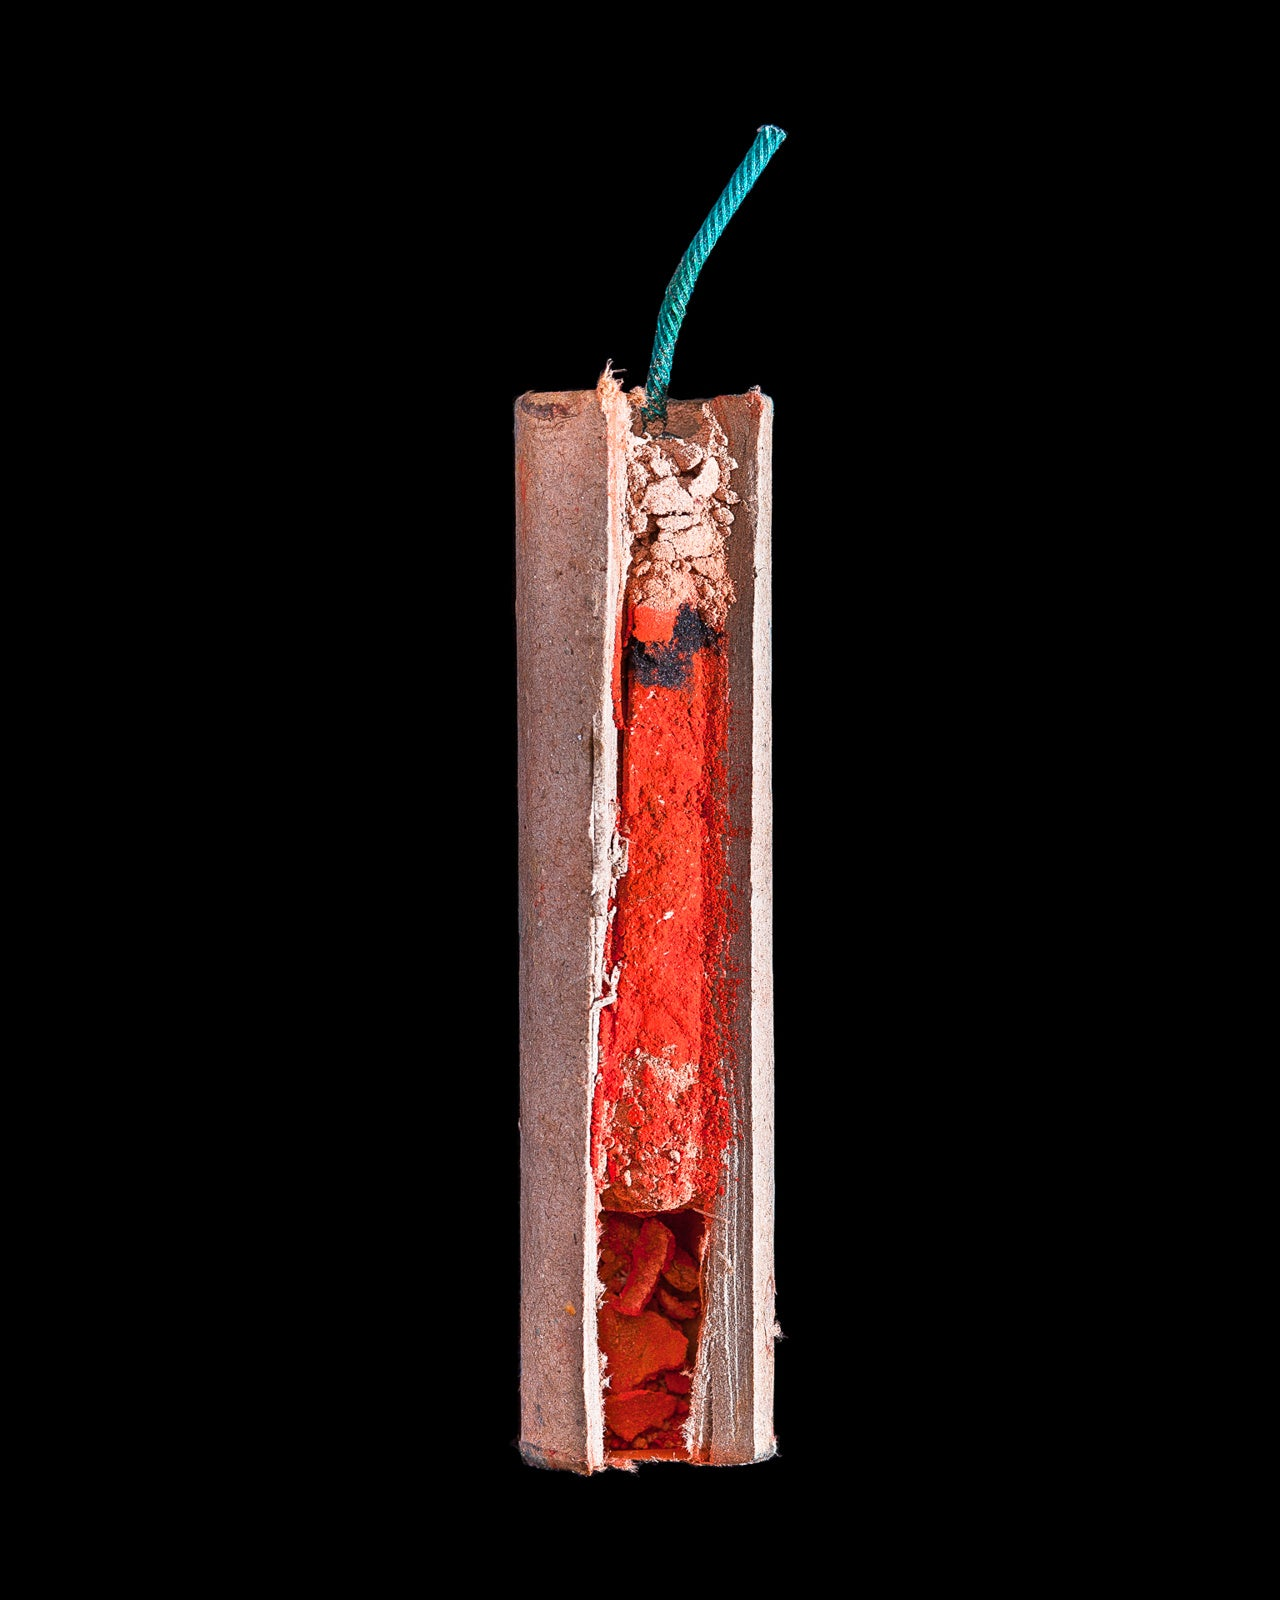 Cross Section Views of Firecrackers Are As Cool As their Explosions